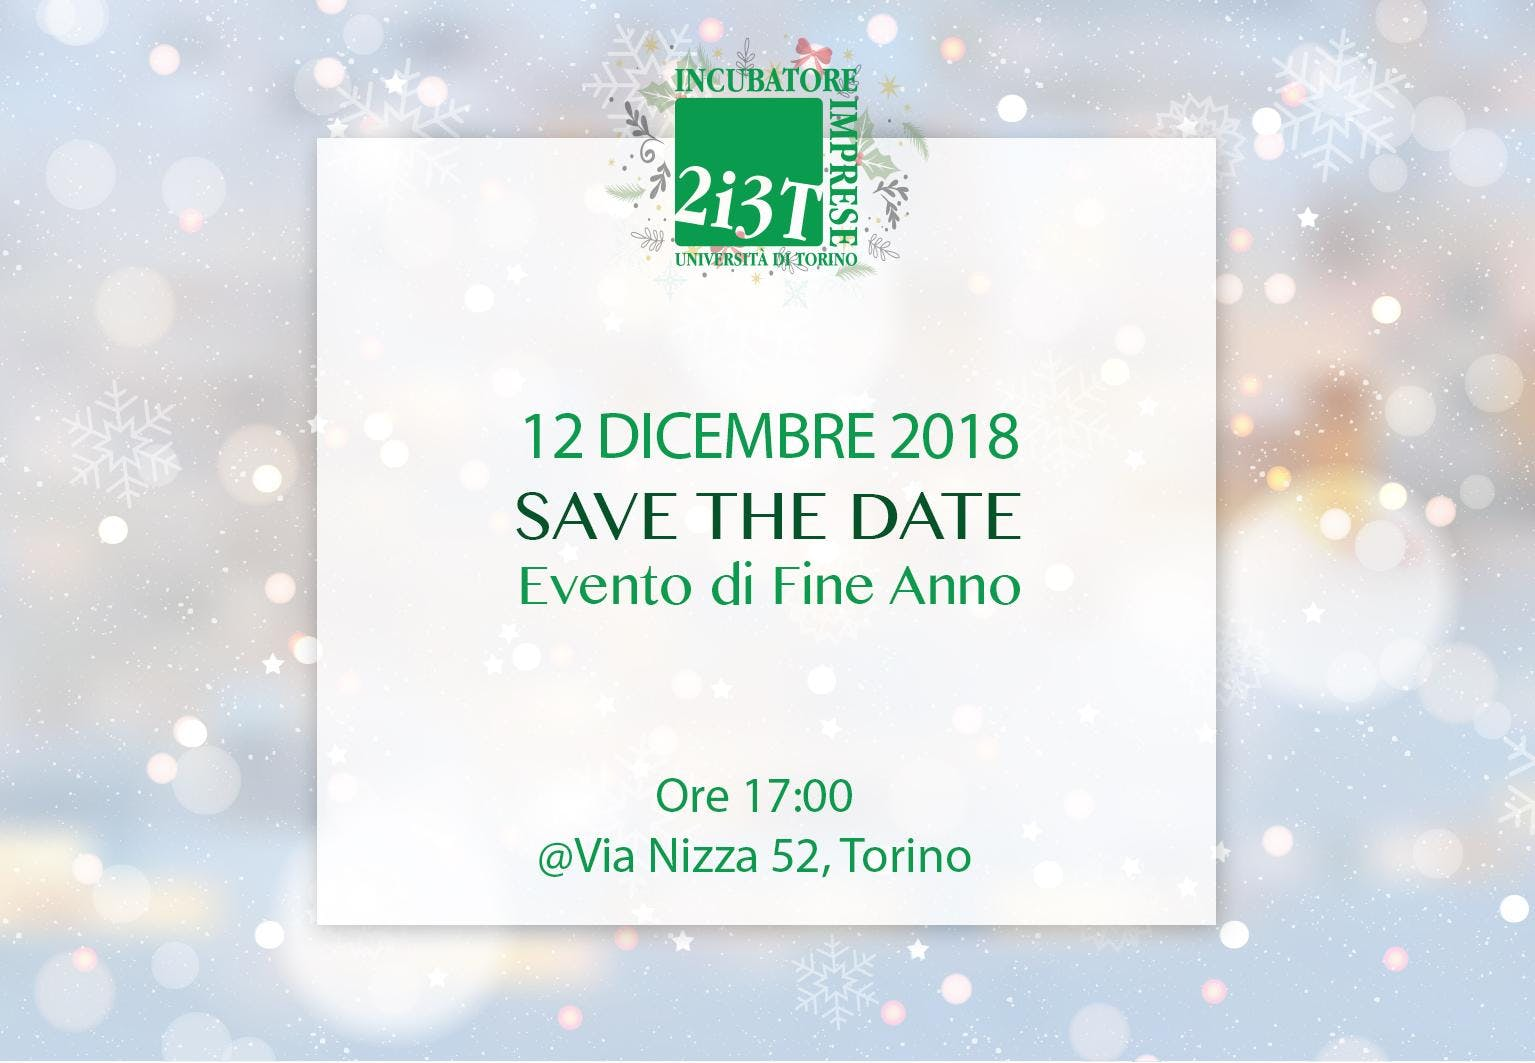 Talks about Entrepreneurship 2018 - Evento di